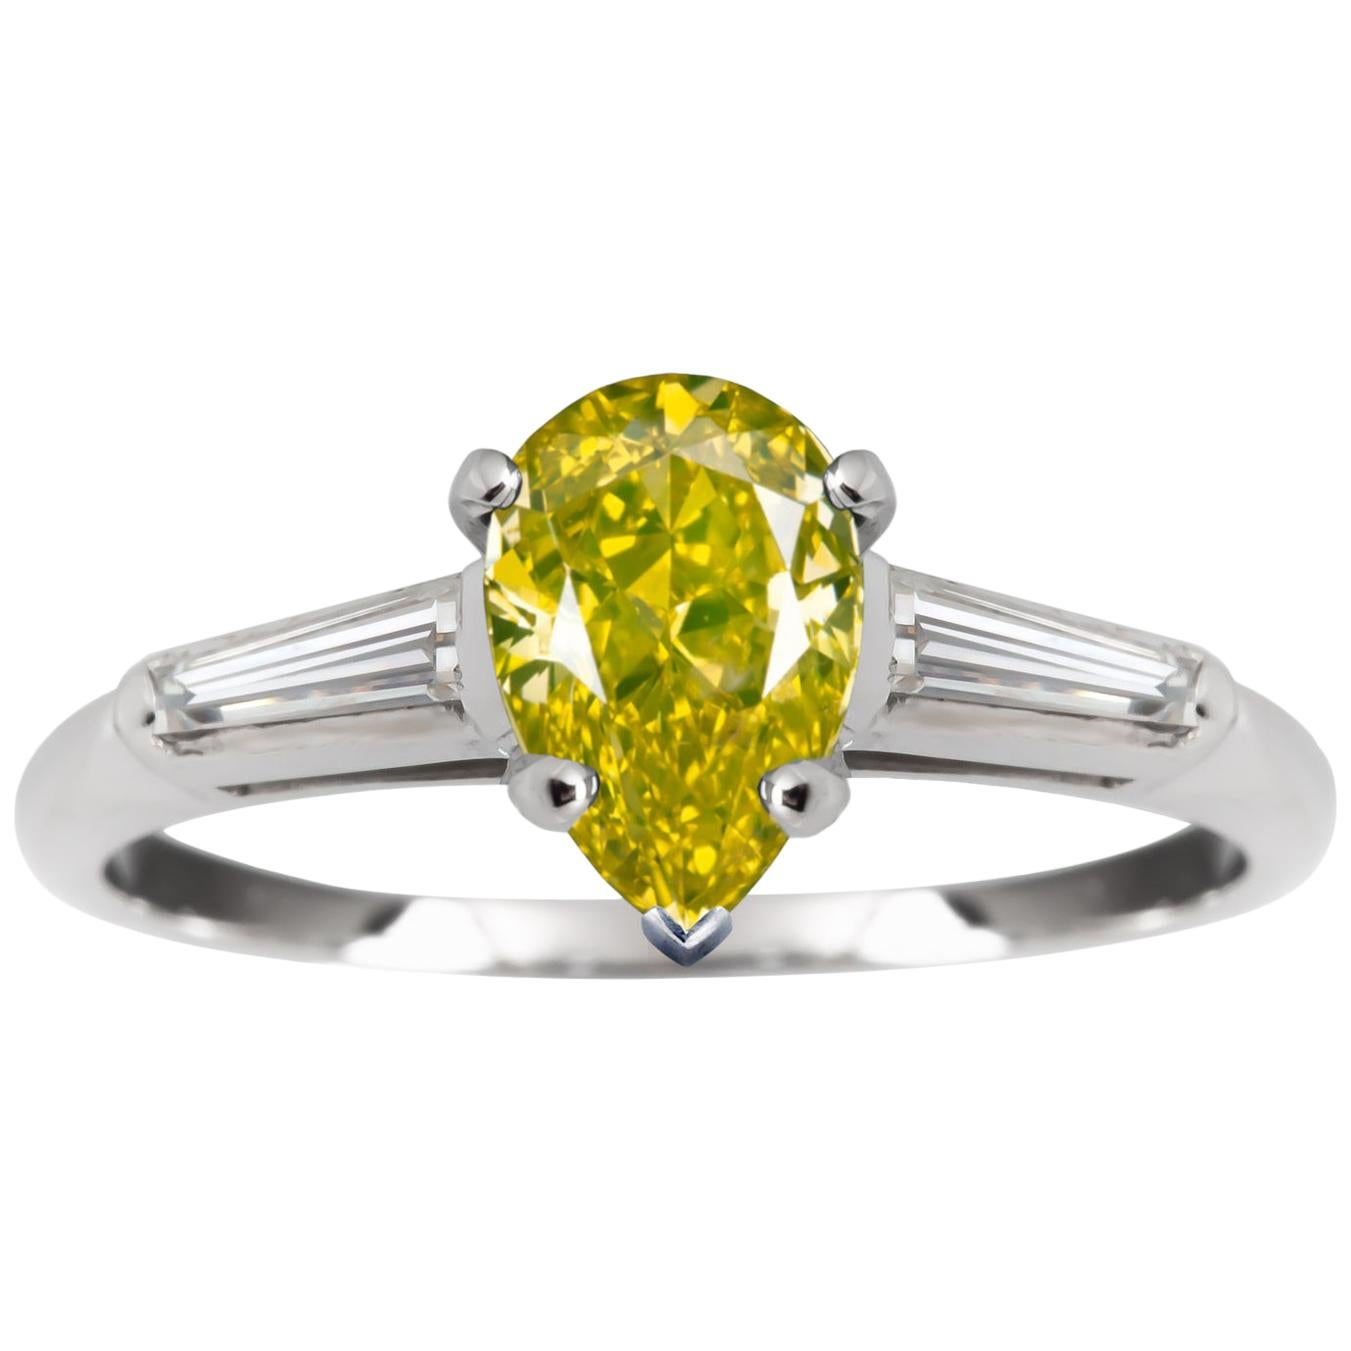 GIA Certified 1 Carat Fancy Vivid Yellow Oval Diamond Platinum Solitaire Ring